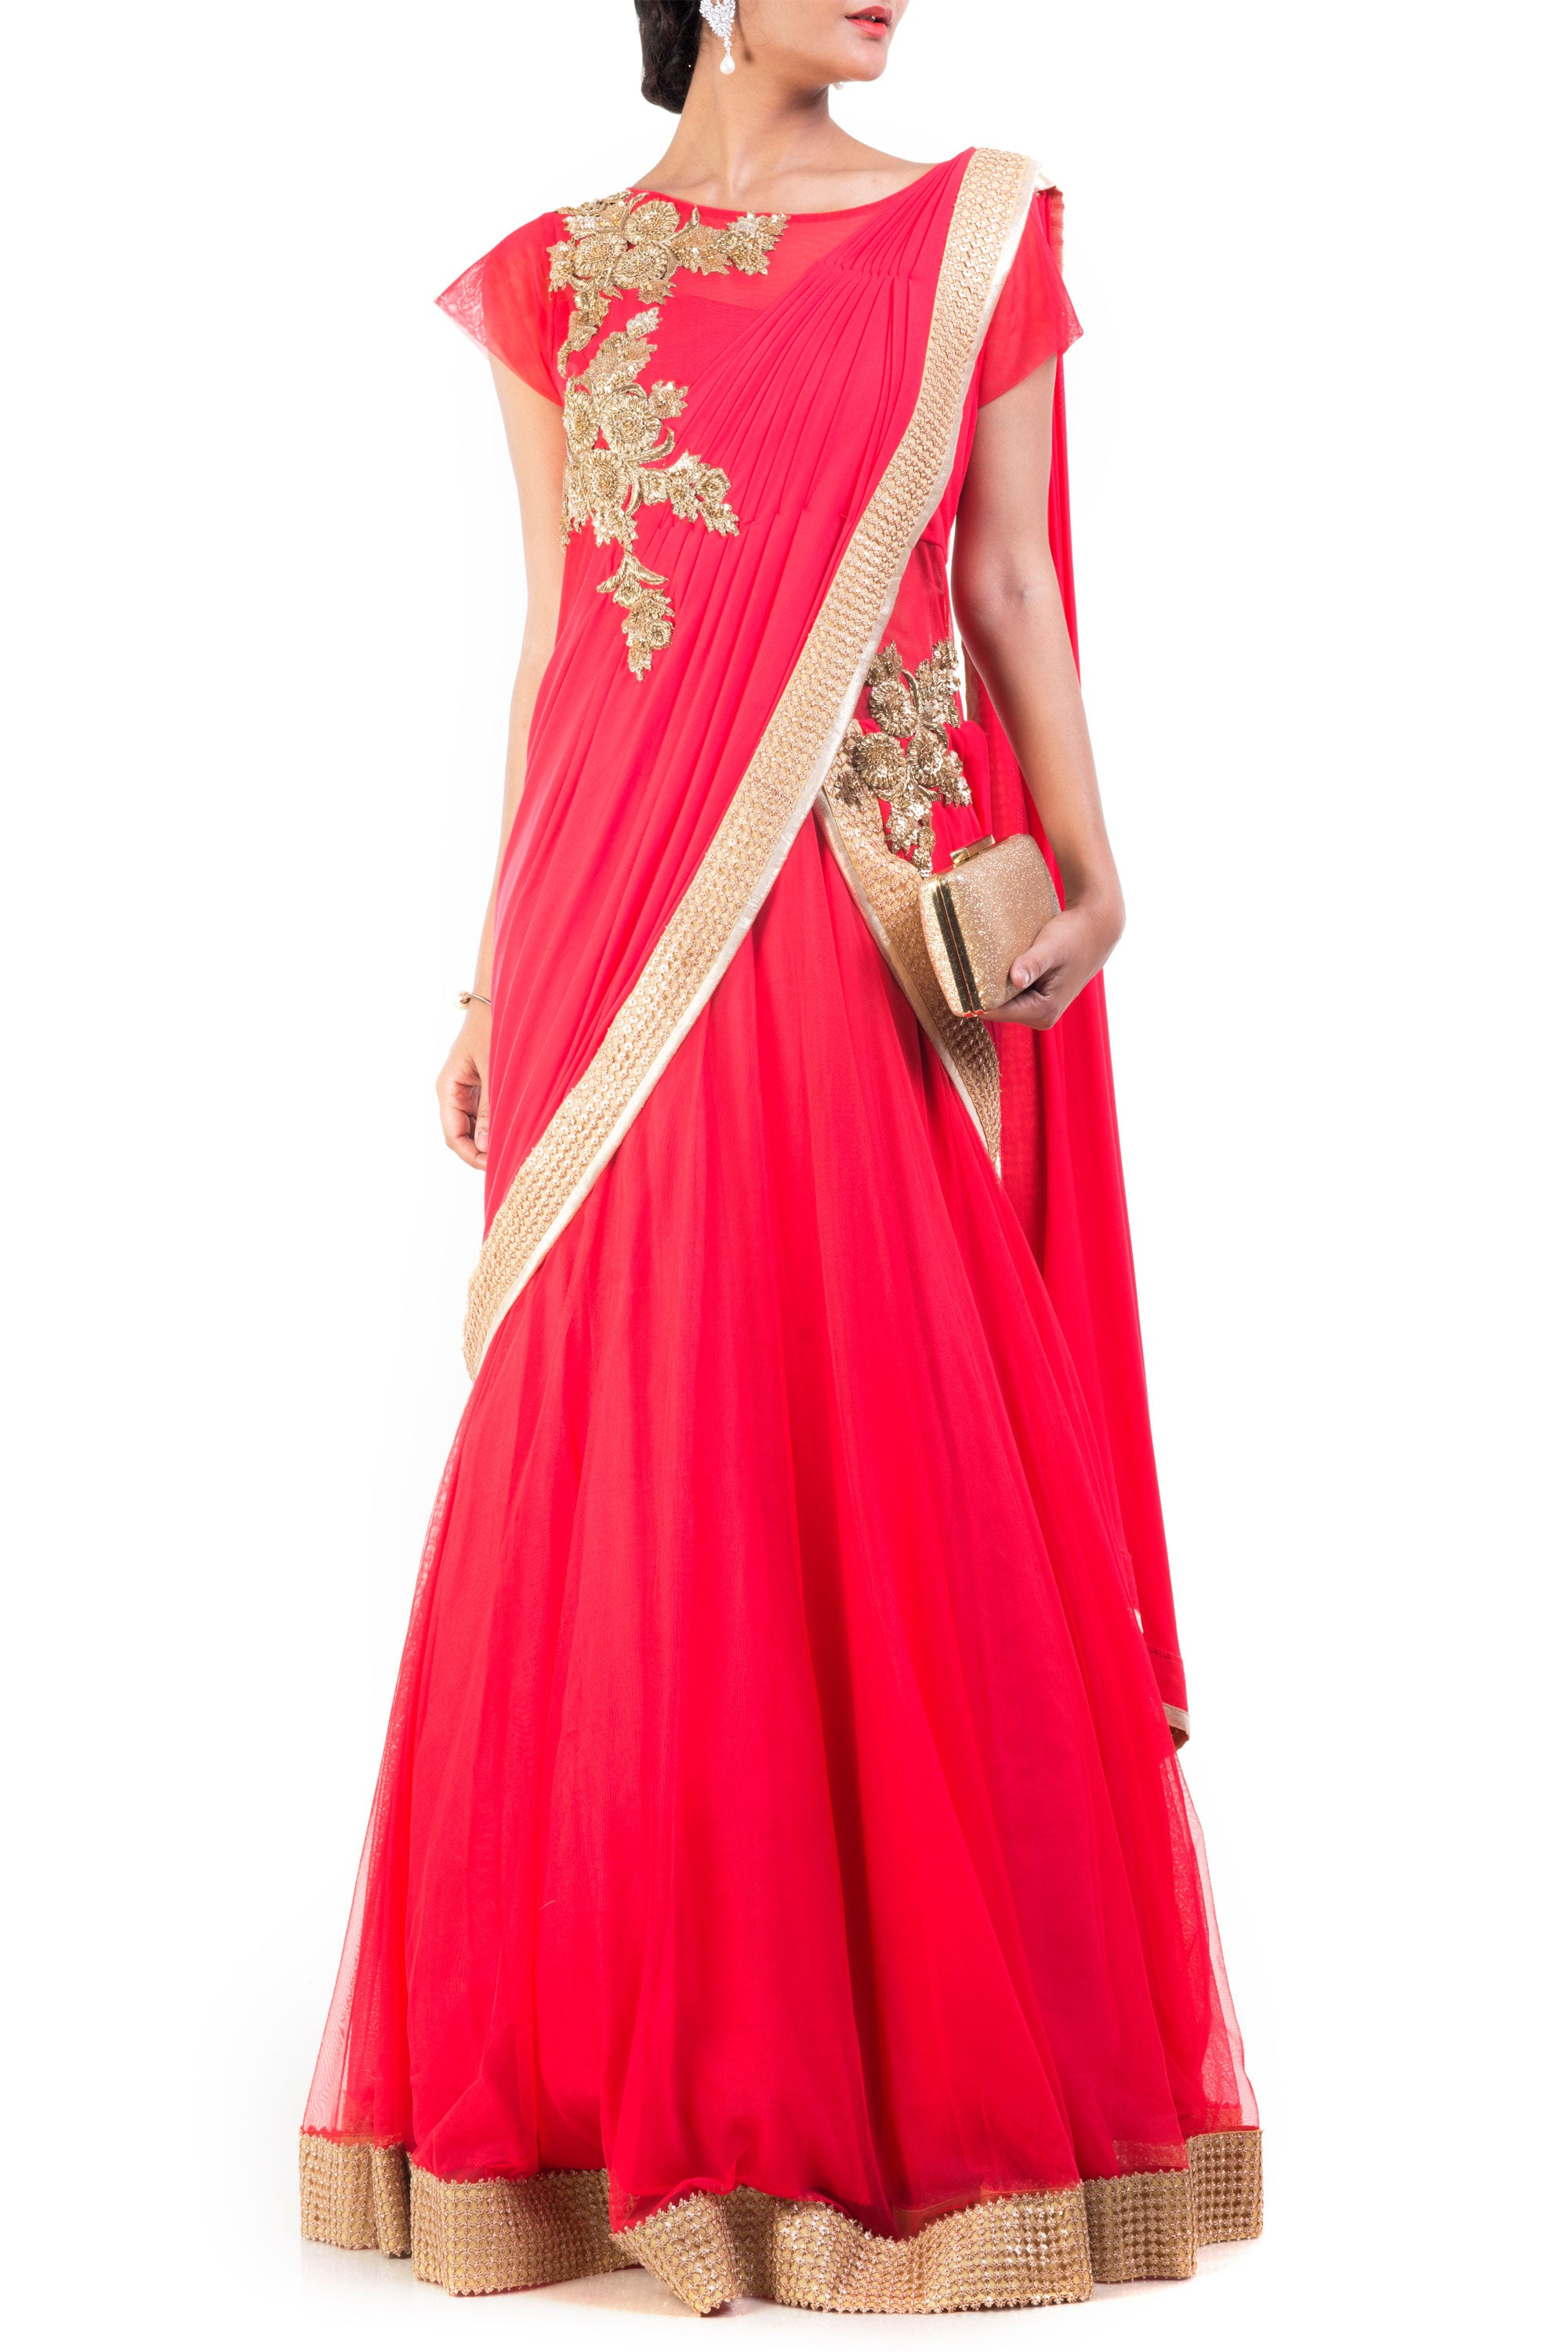 Tomato Coloured Gown Saree Front